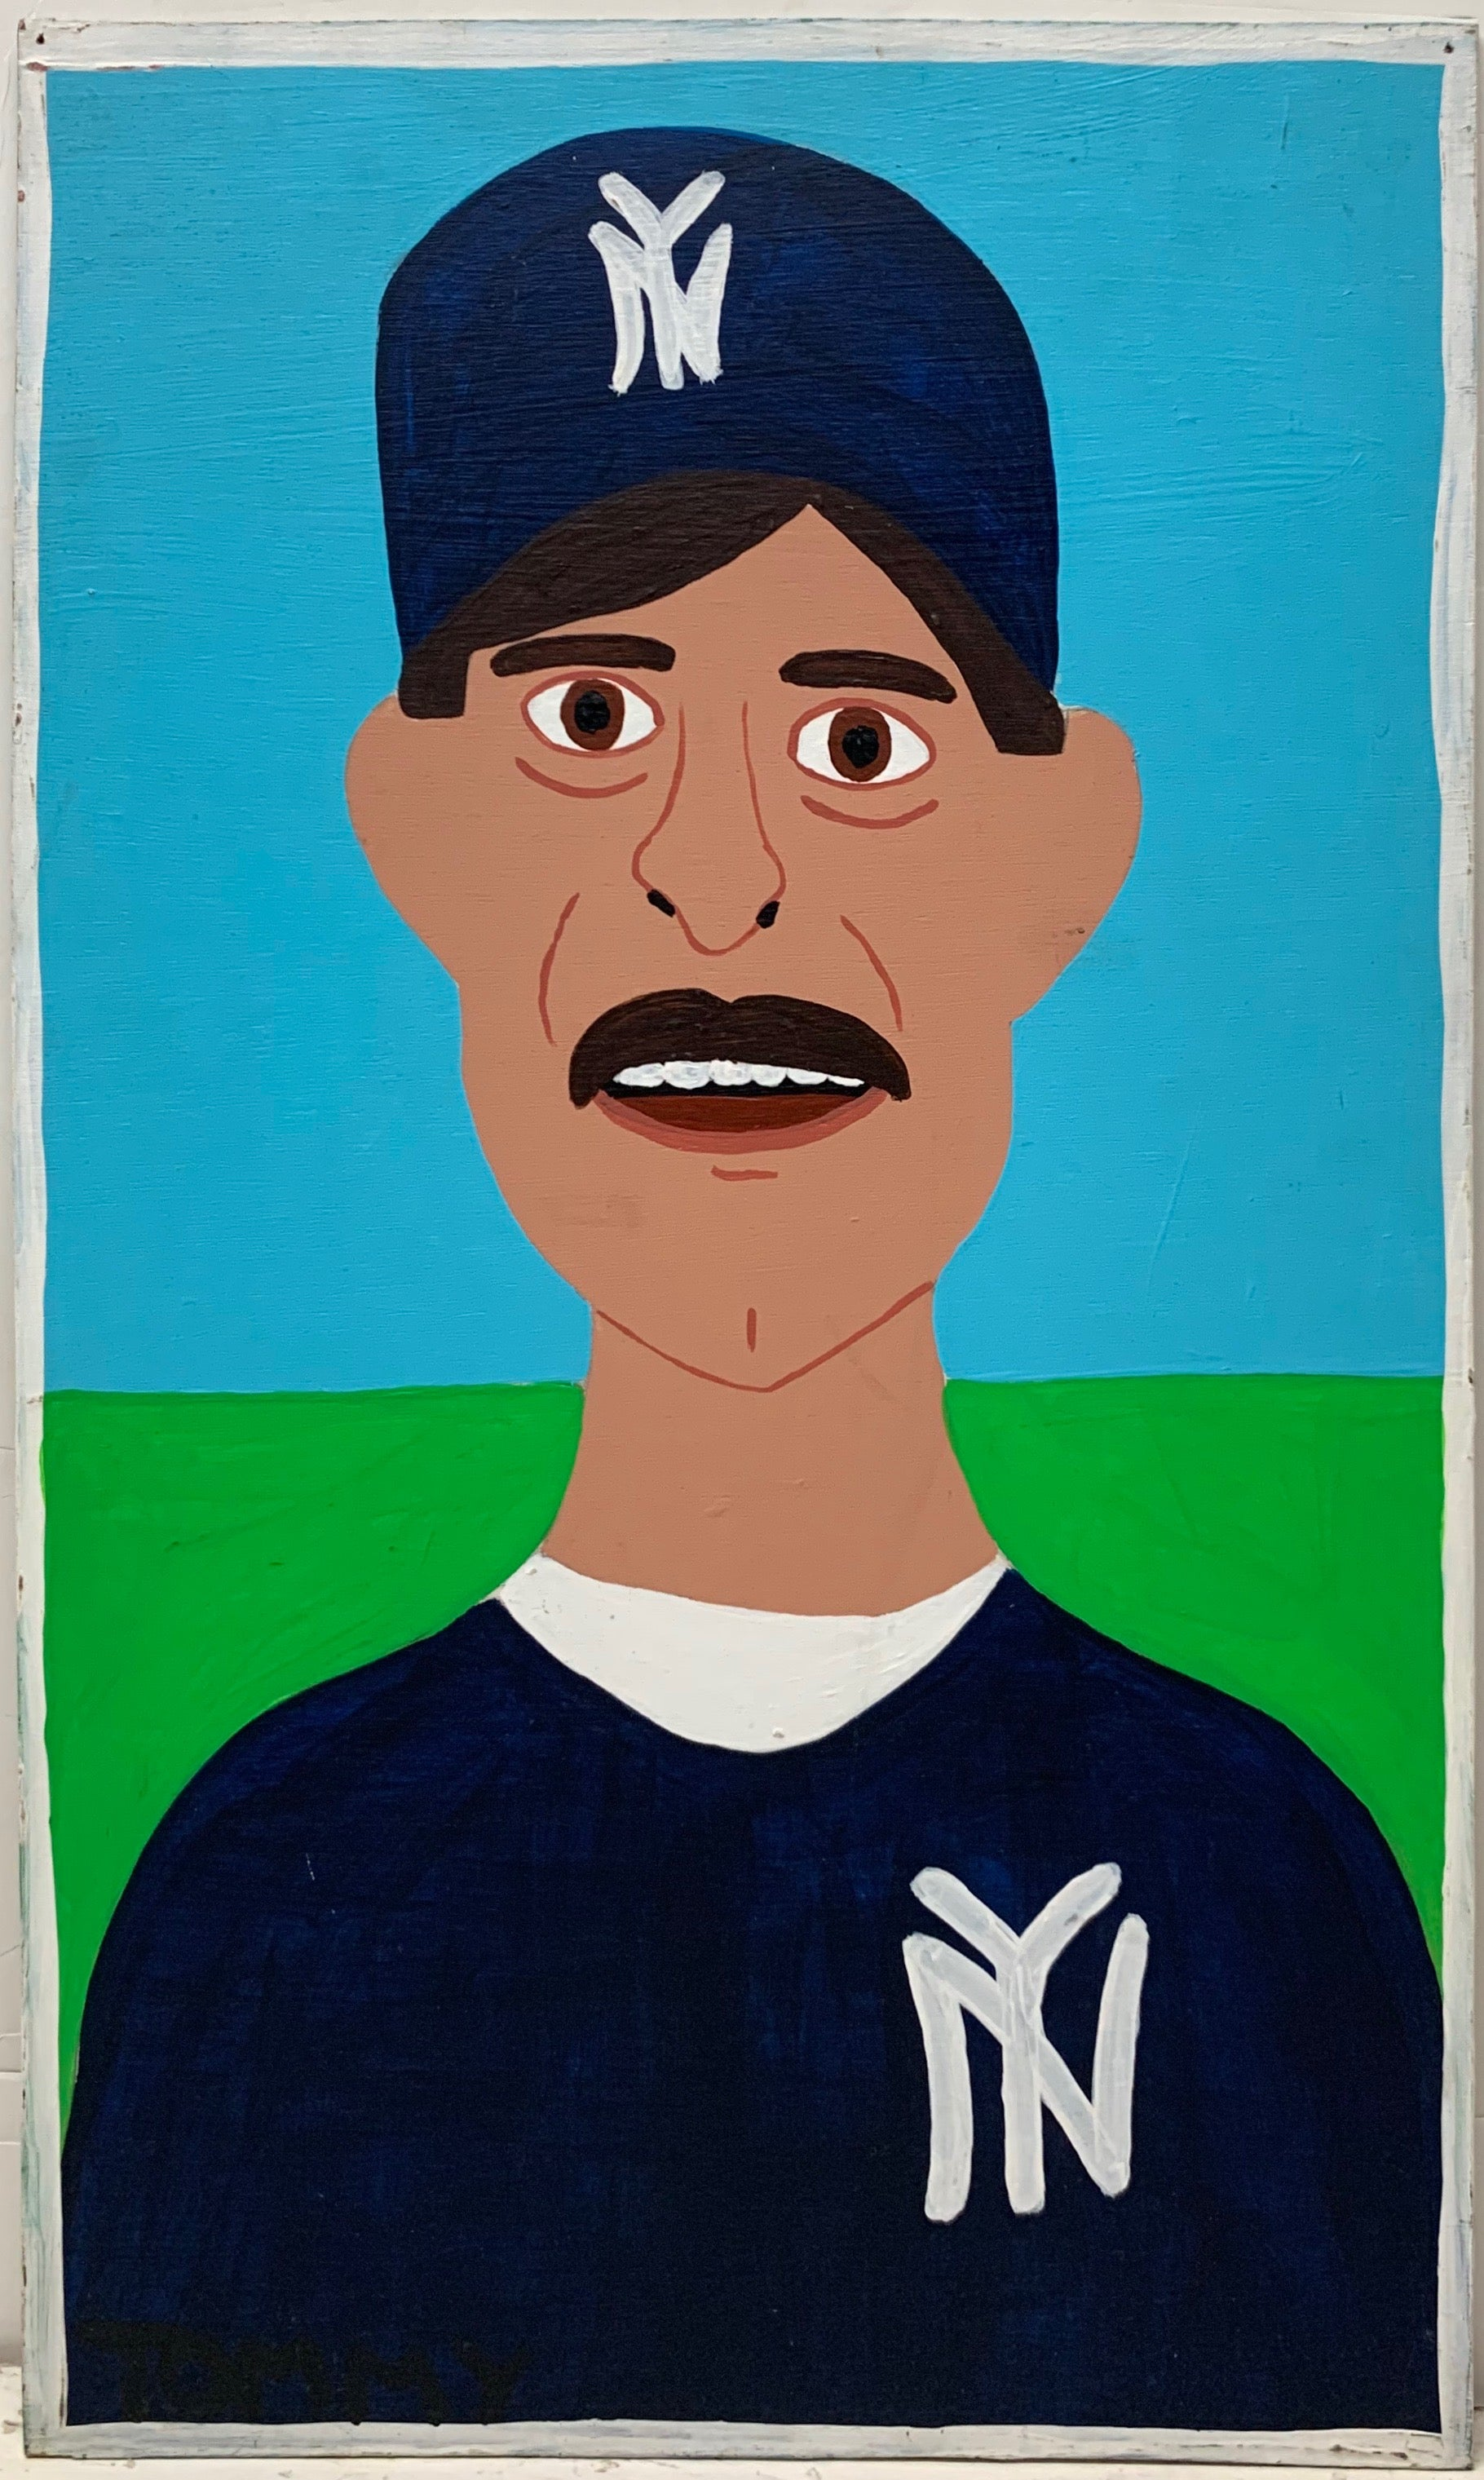 A Tommy Cheng portrait of Don Mattingly in a New York Yankees uniform, standing against a green field and blue sky.